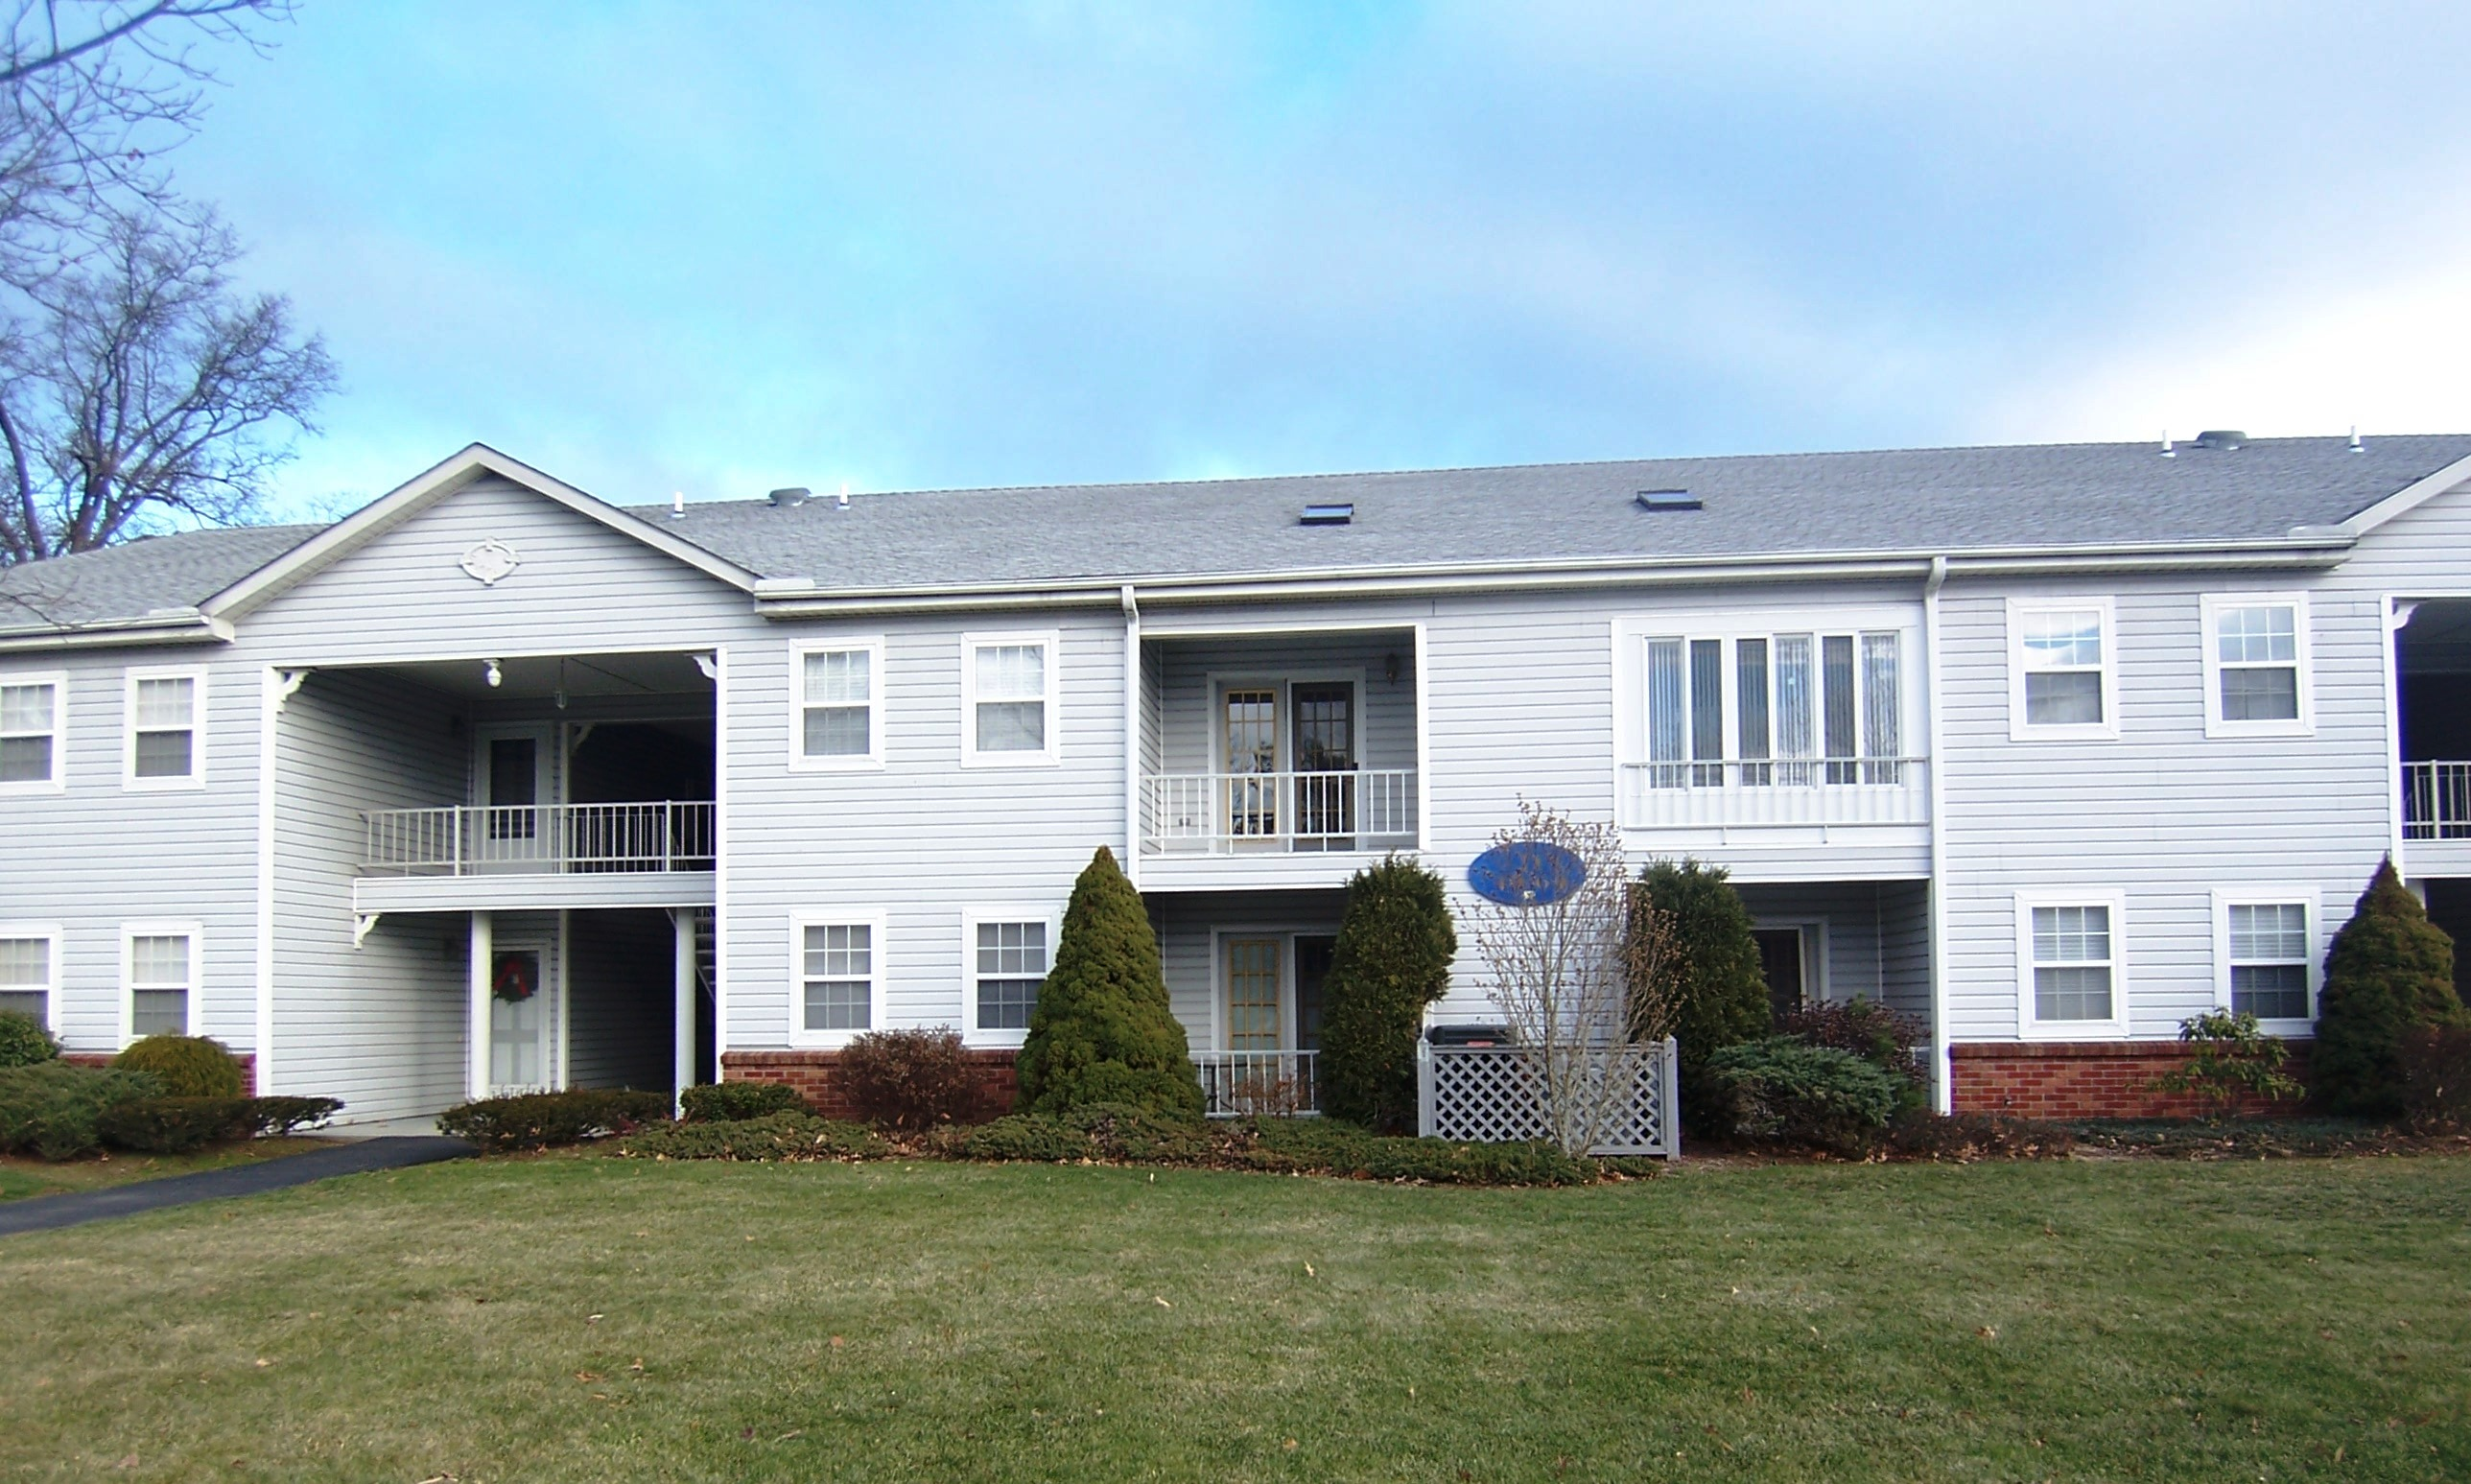 Tivoli Ny Images Coming Soon Condo Unit In Tivoli Ny